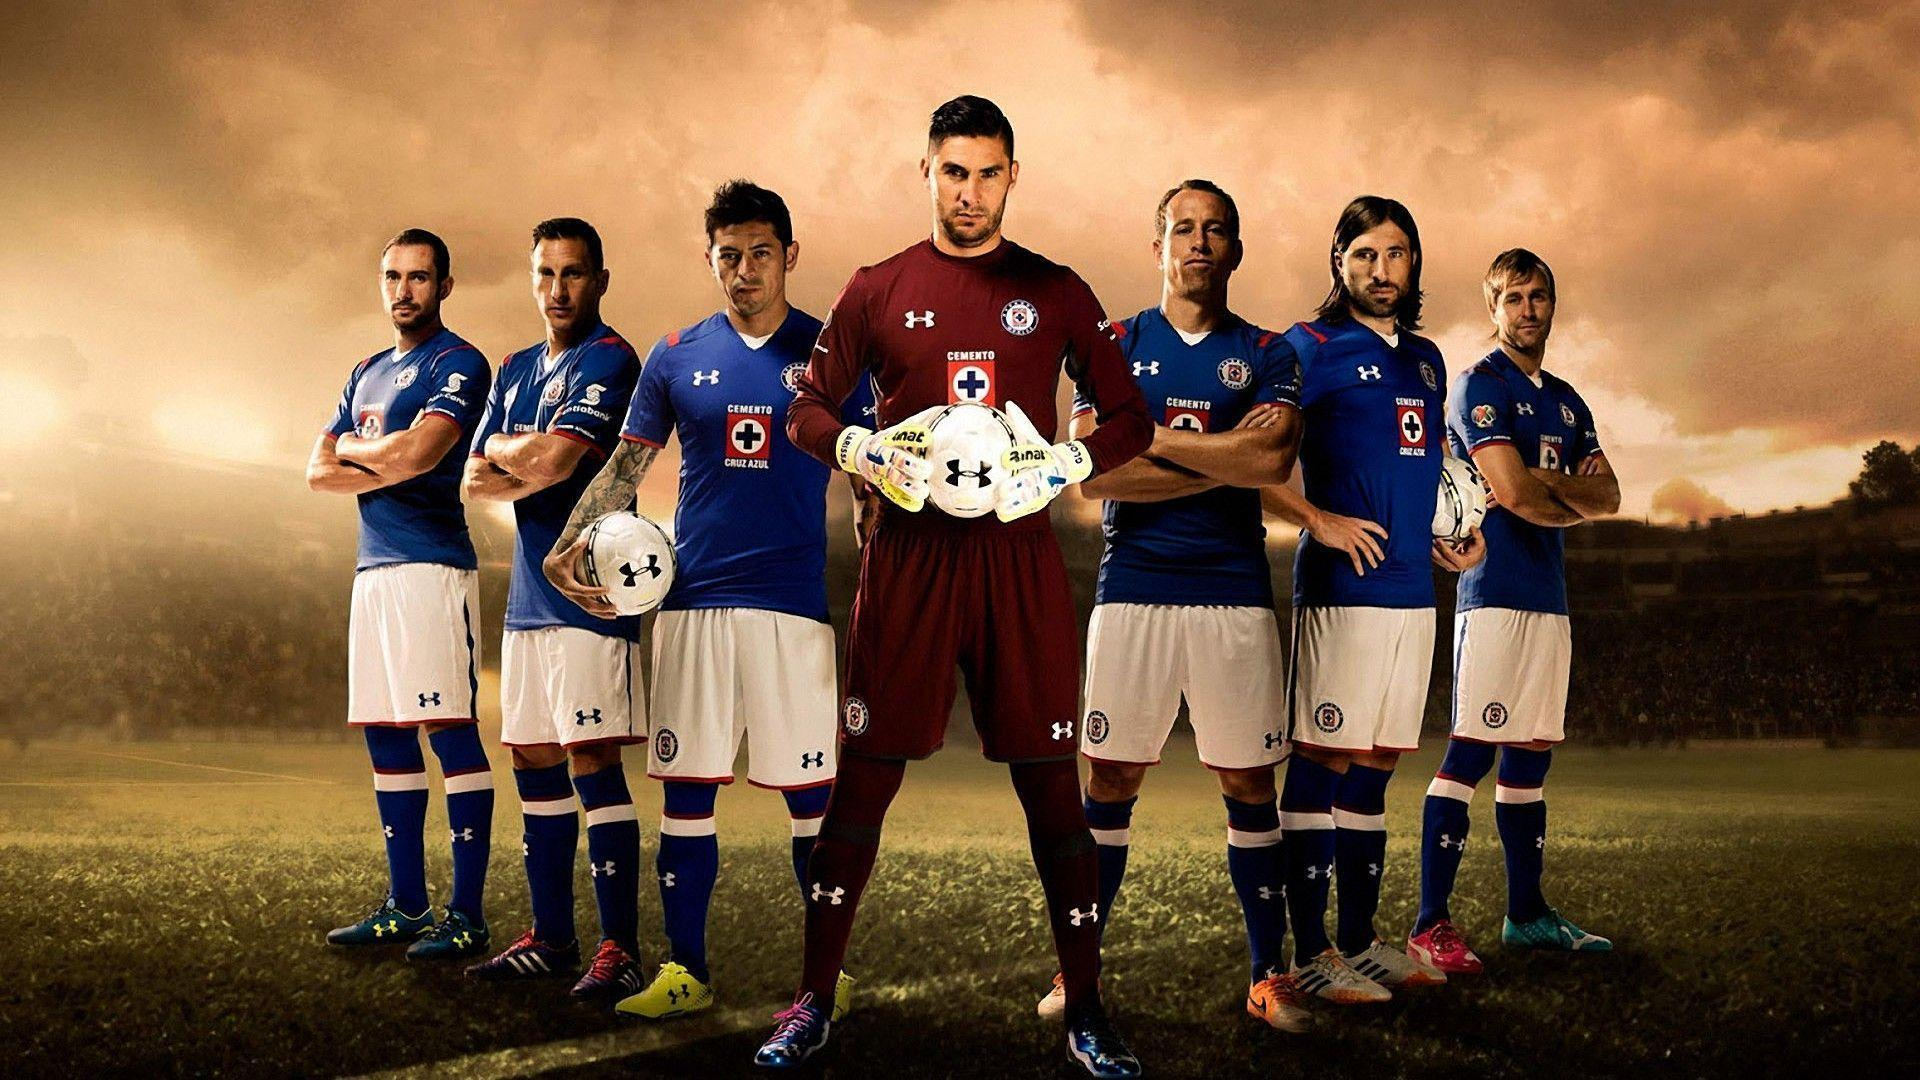 Cruz Azul 2014-15 Under Armour Kit Wallpaper Wide or HD | Sports ...